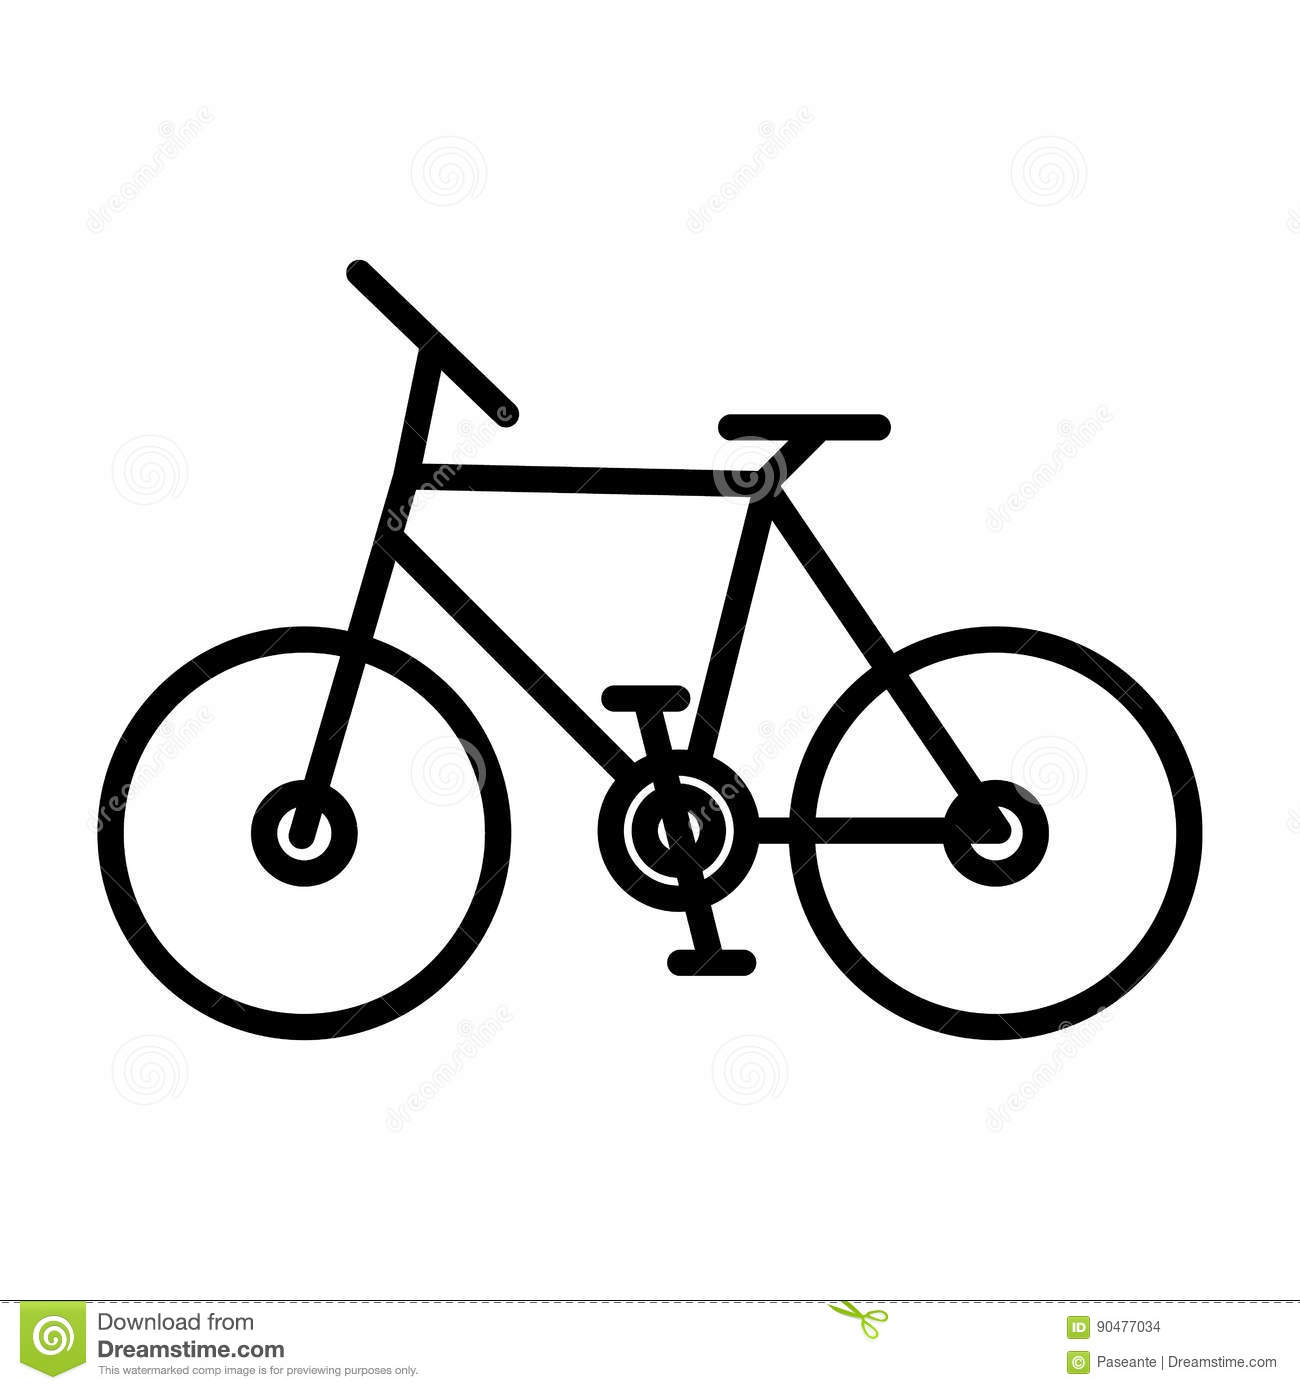 Vector Linear Image Of A Black Contour Of A Simple Bicycle